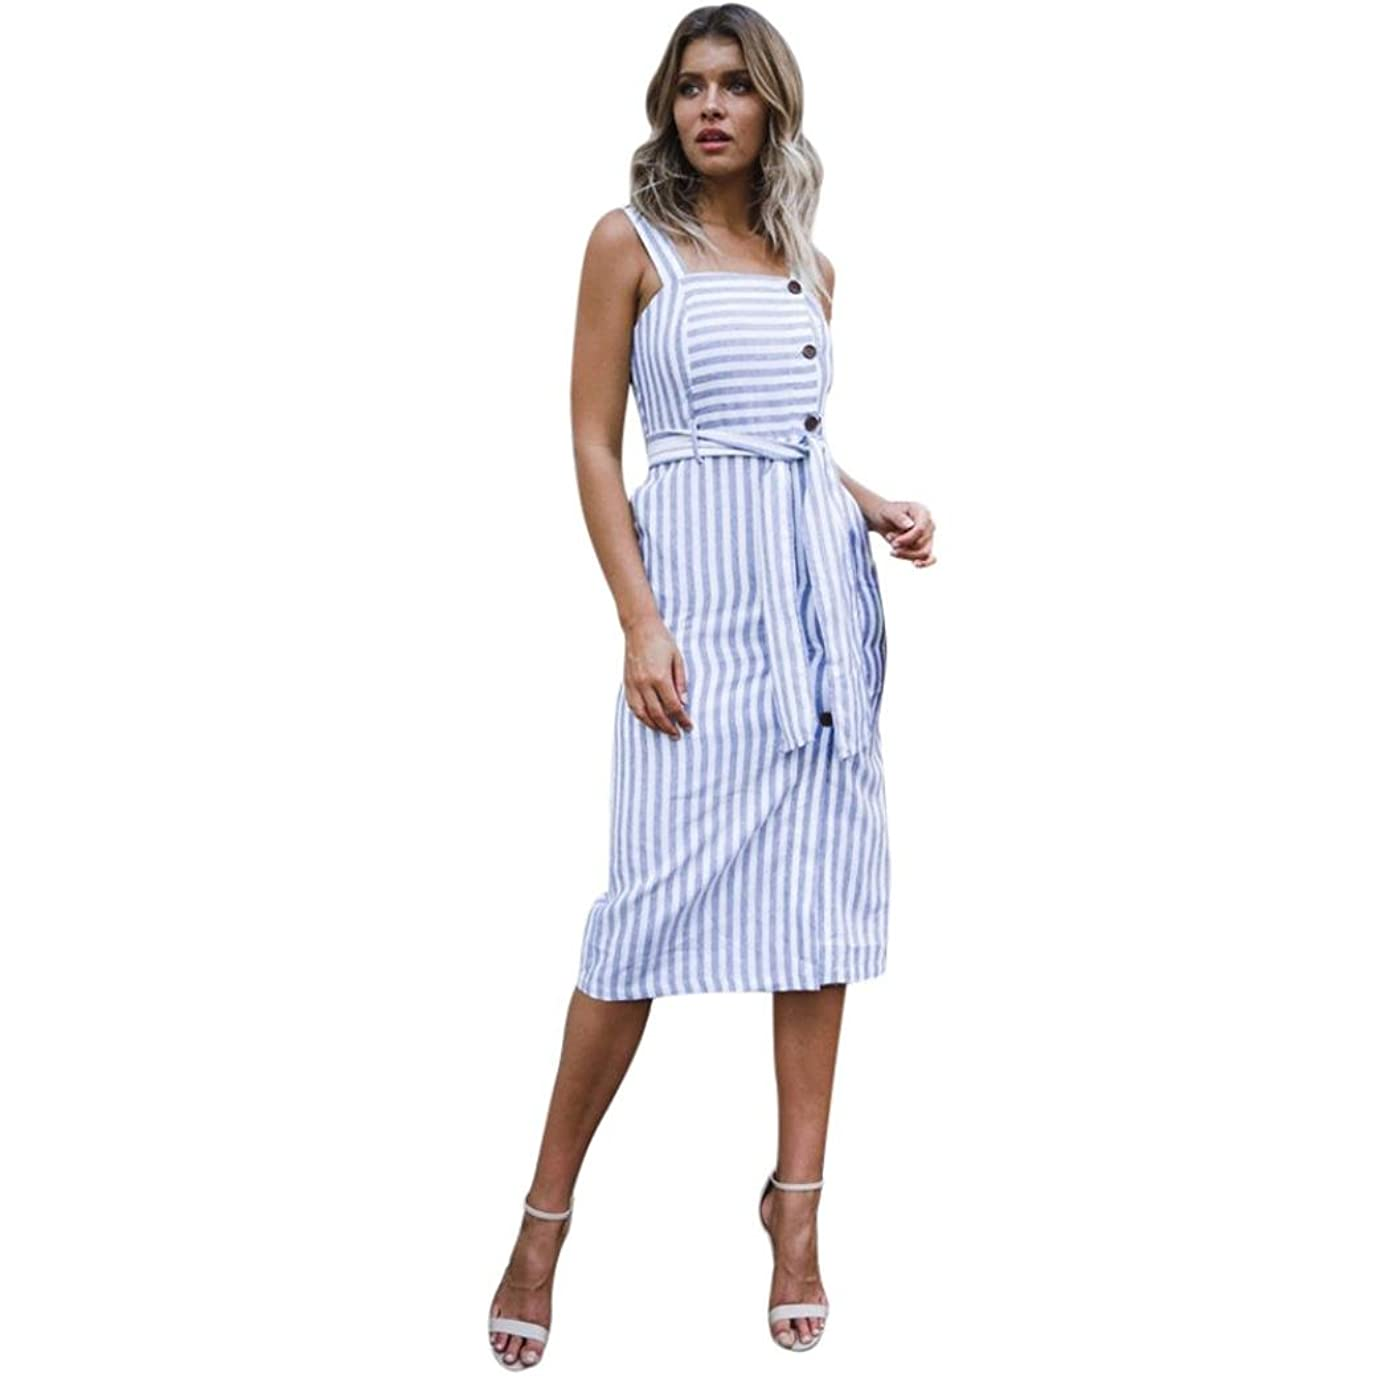 無意識パブ鎮静剤SakuraBest Womens Summer Striped Button Down Dress,Shoulder Strap Knee-Length Dress for Girls (L)